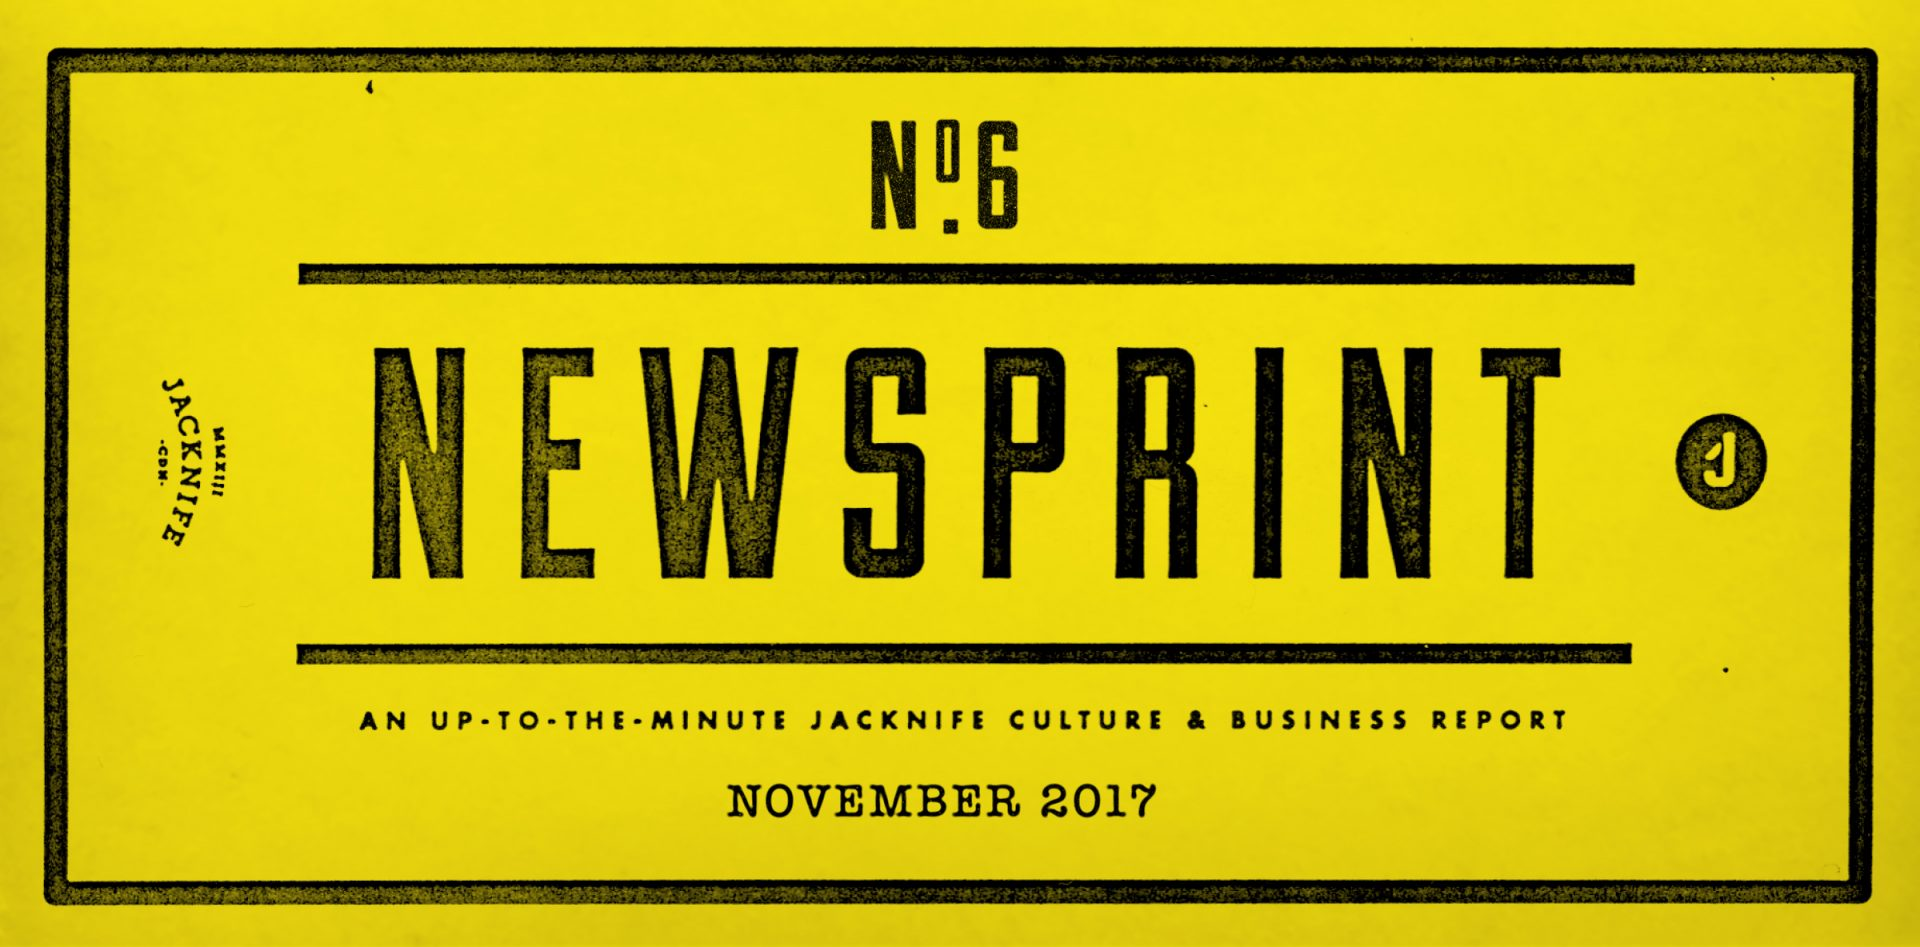 Jacknife News ticket with yellow background